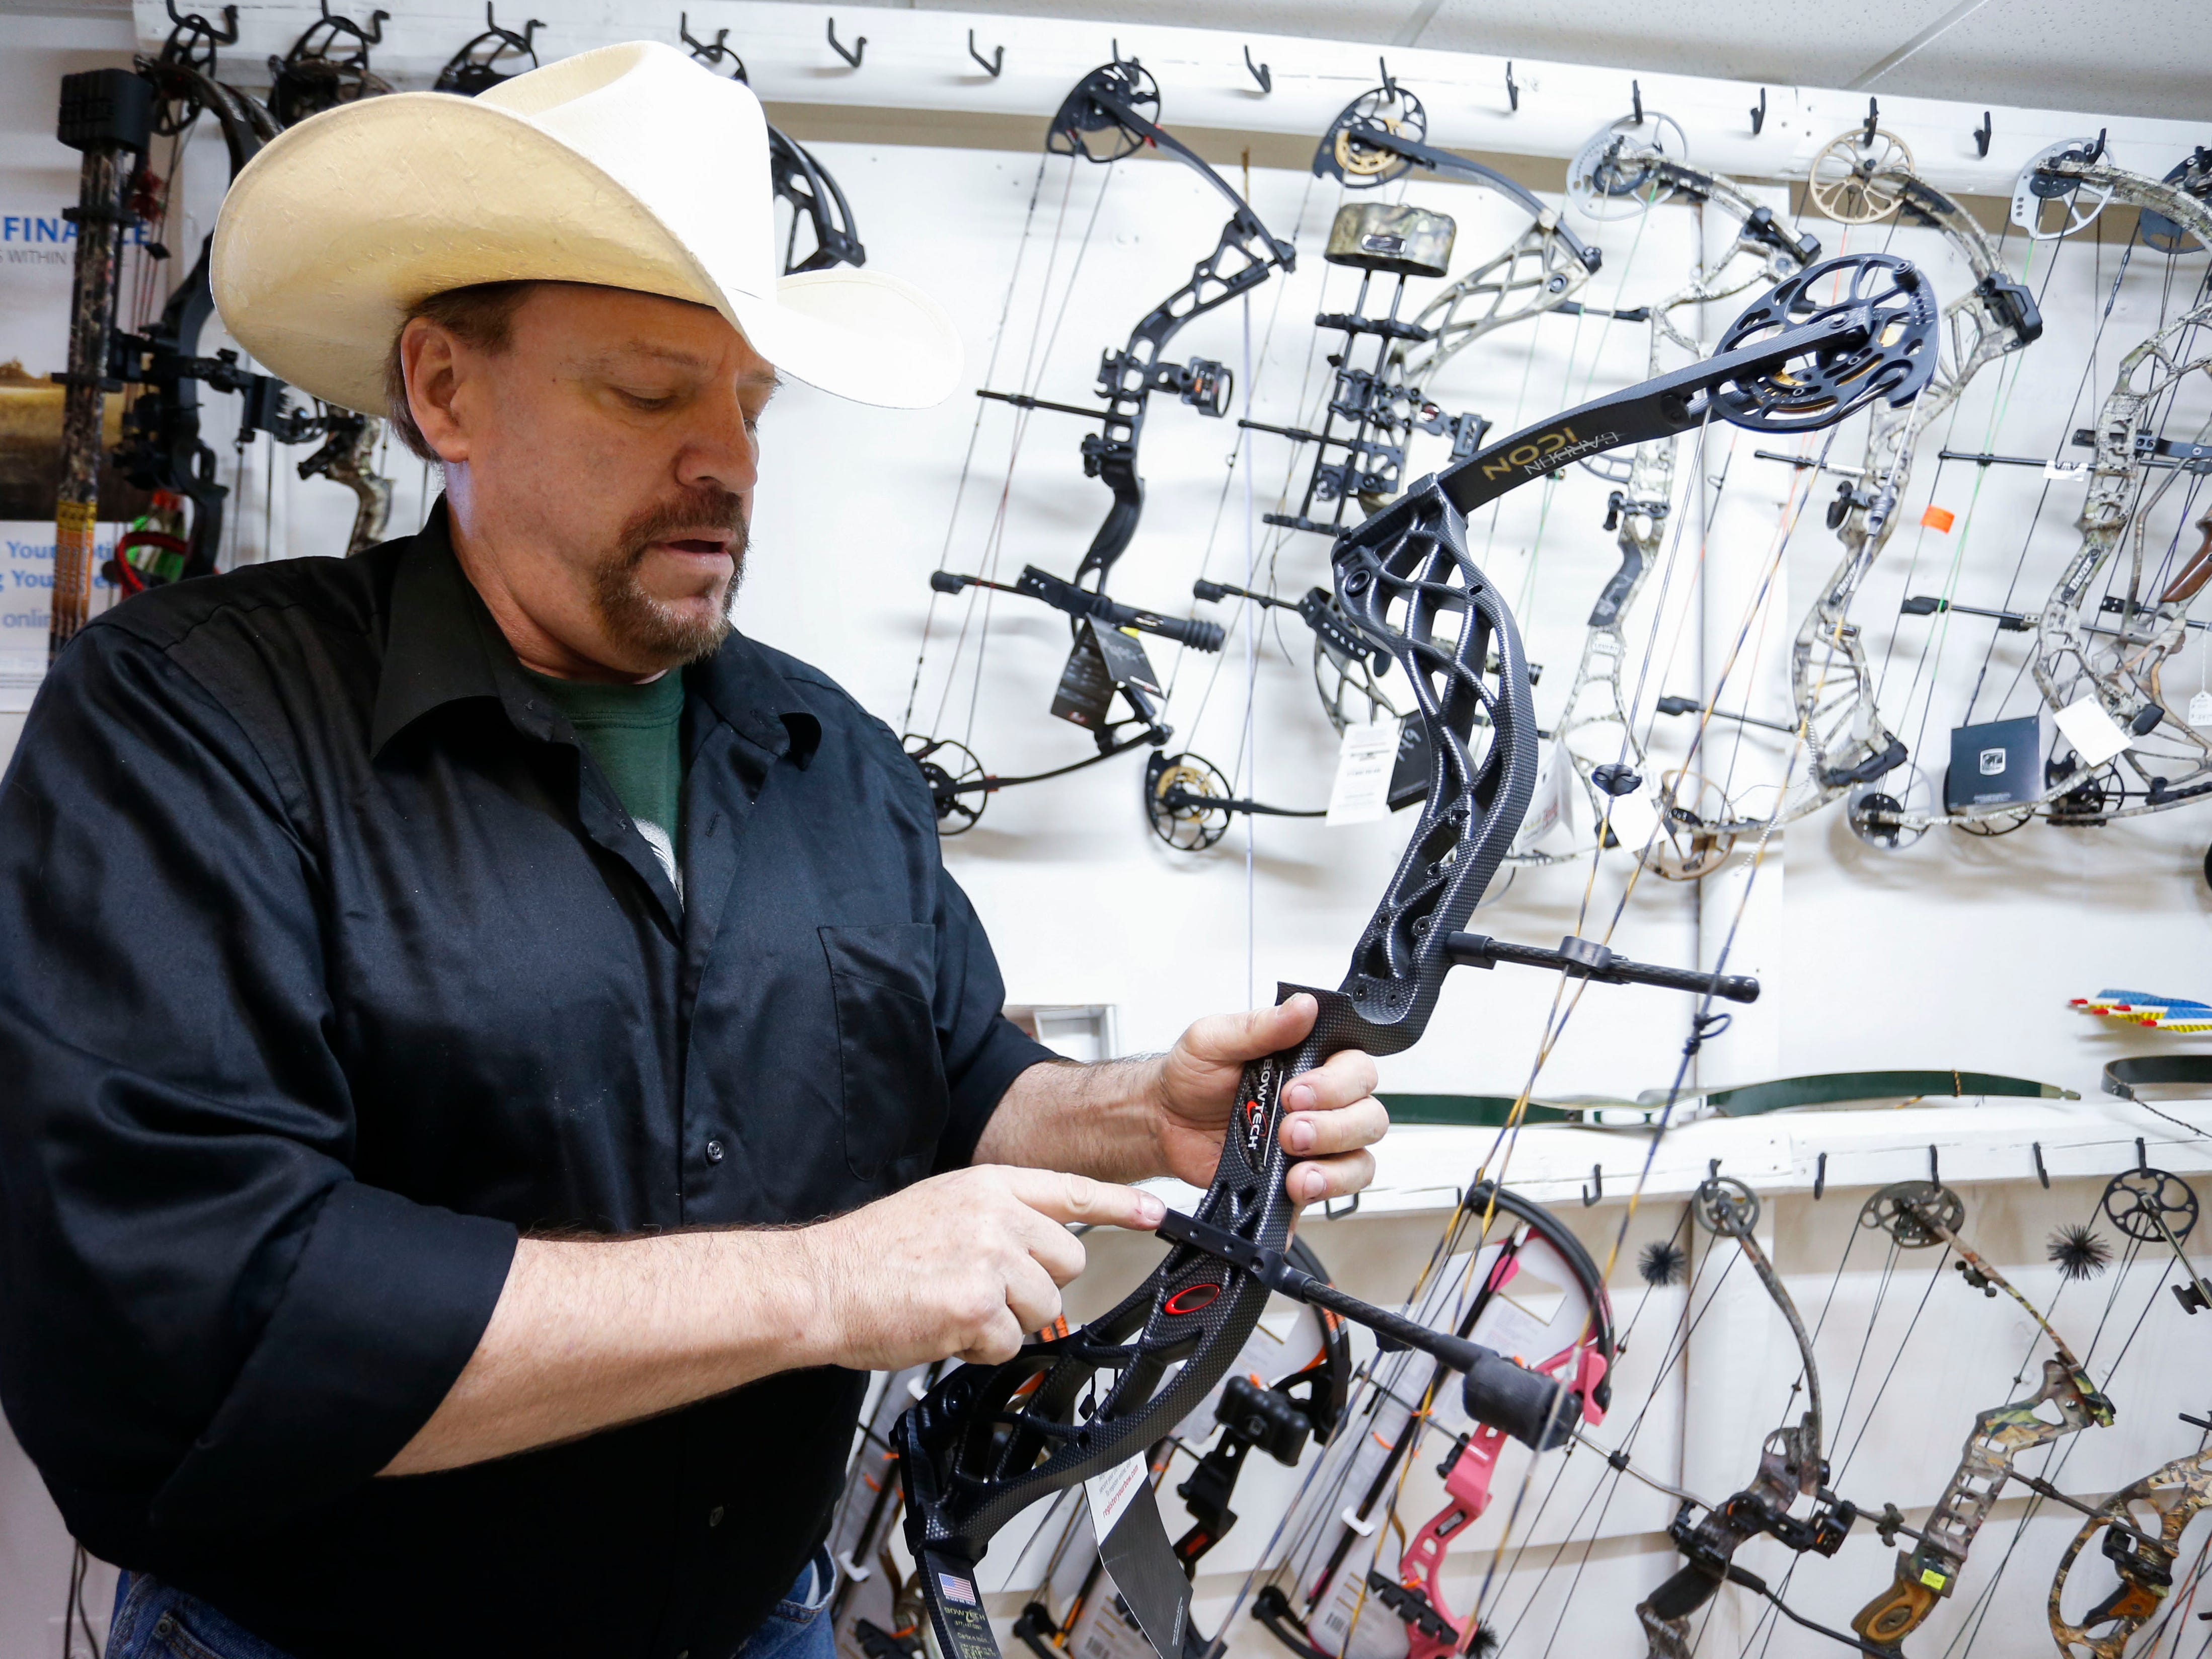 Inventor Joe Goade shows off an archery device, which he holds the patent to, that instantly stops a compound bow string after it has fired an arrow at McCarthy's Outdoors and Gun Club, the outdoor shop he is co-owner of in Springfield.